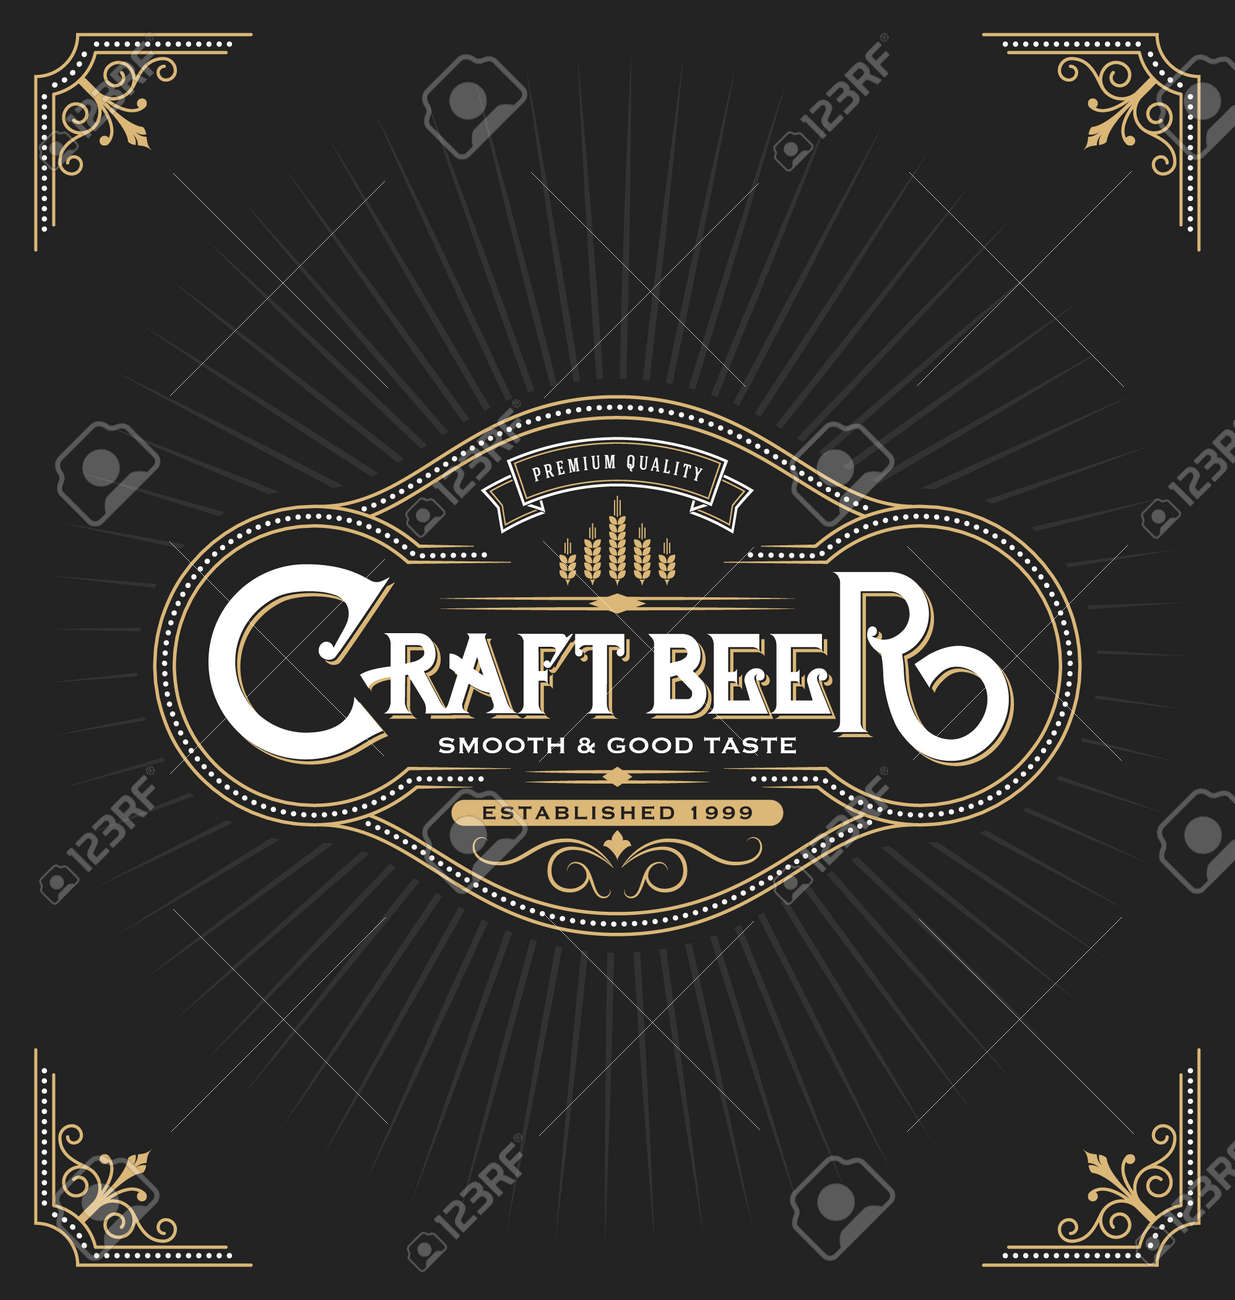 Craft Beer Sticker Label Design. Vintage Frame Template Suitable ...